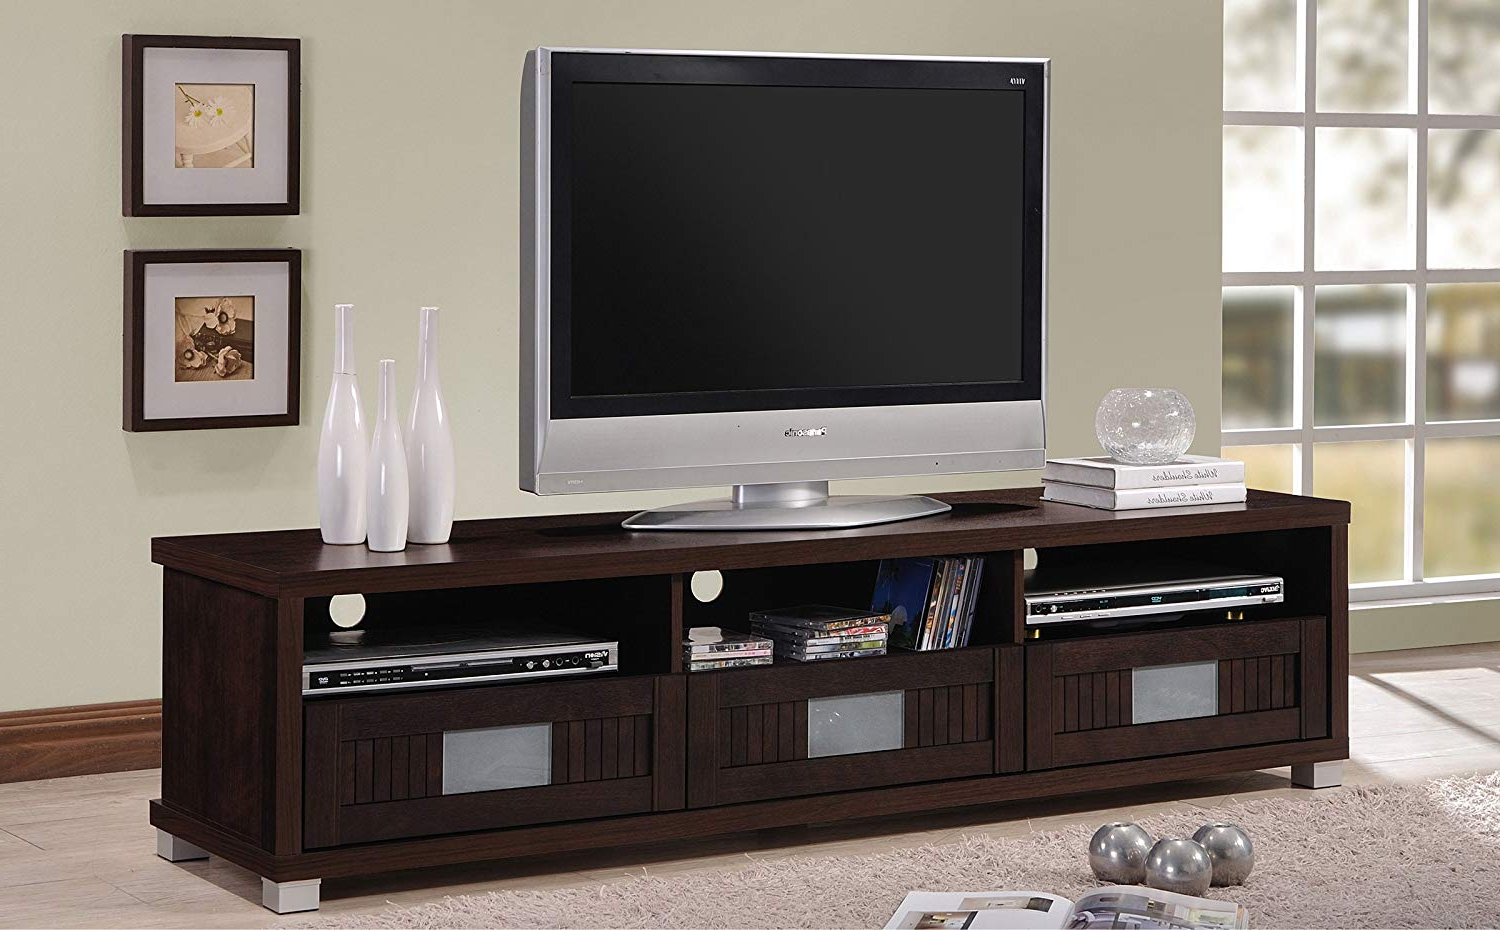 Wooden Tv Stands And Cabinets In Most Current Amazon: Wholesale Interiors Baxton Studio Gerhardine Wood Tv (View 16 of 20)